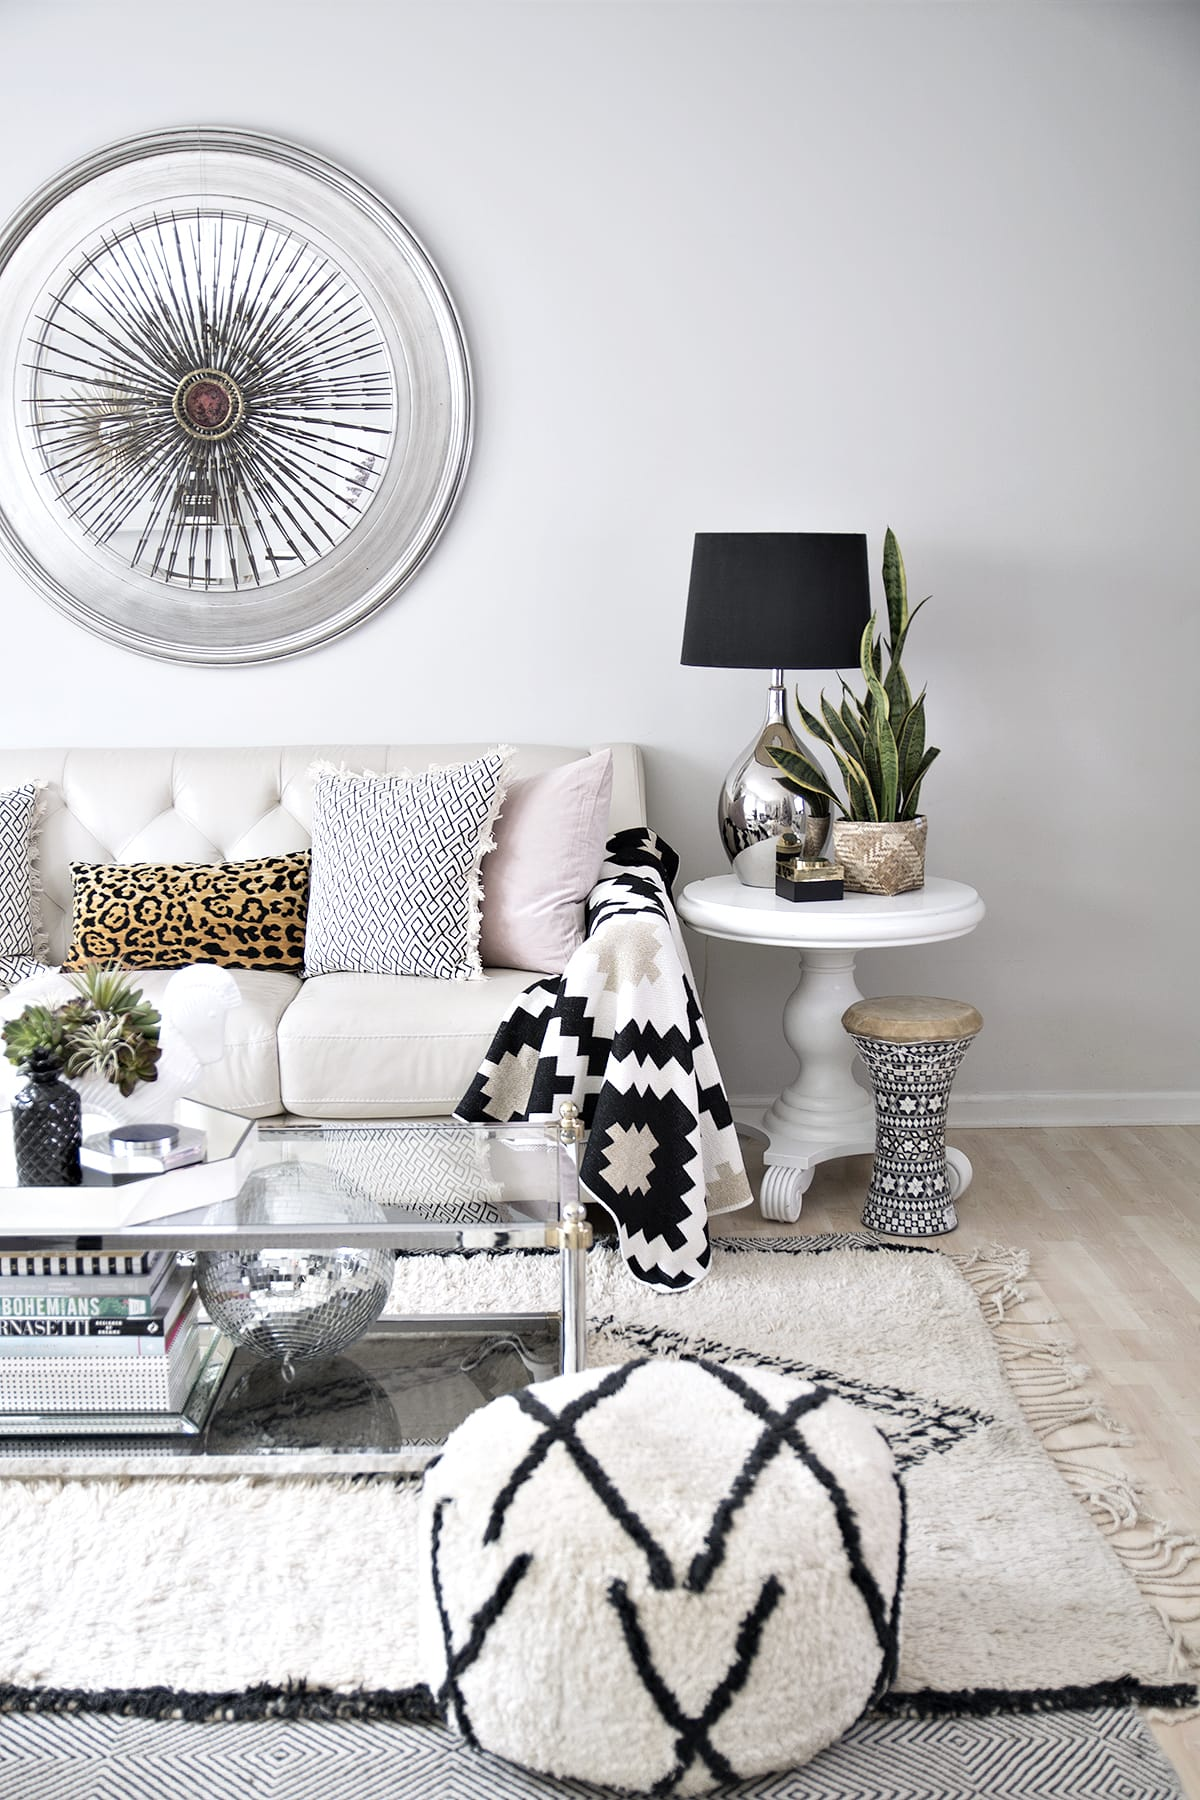 New Fabulous Pillows | my favorite throw pillows | handmade throw pillows | blush throw pillows | patterned throw pillows | eclectic neutral living room | black and white accents in eclectic neutral living room